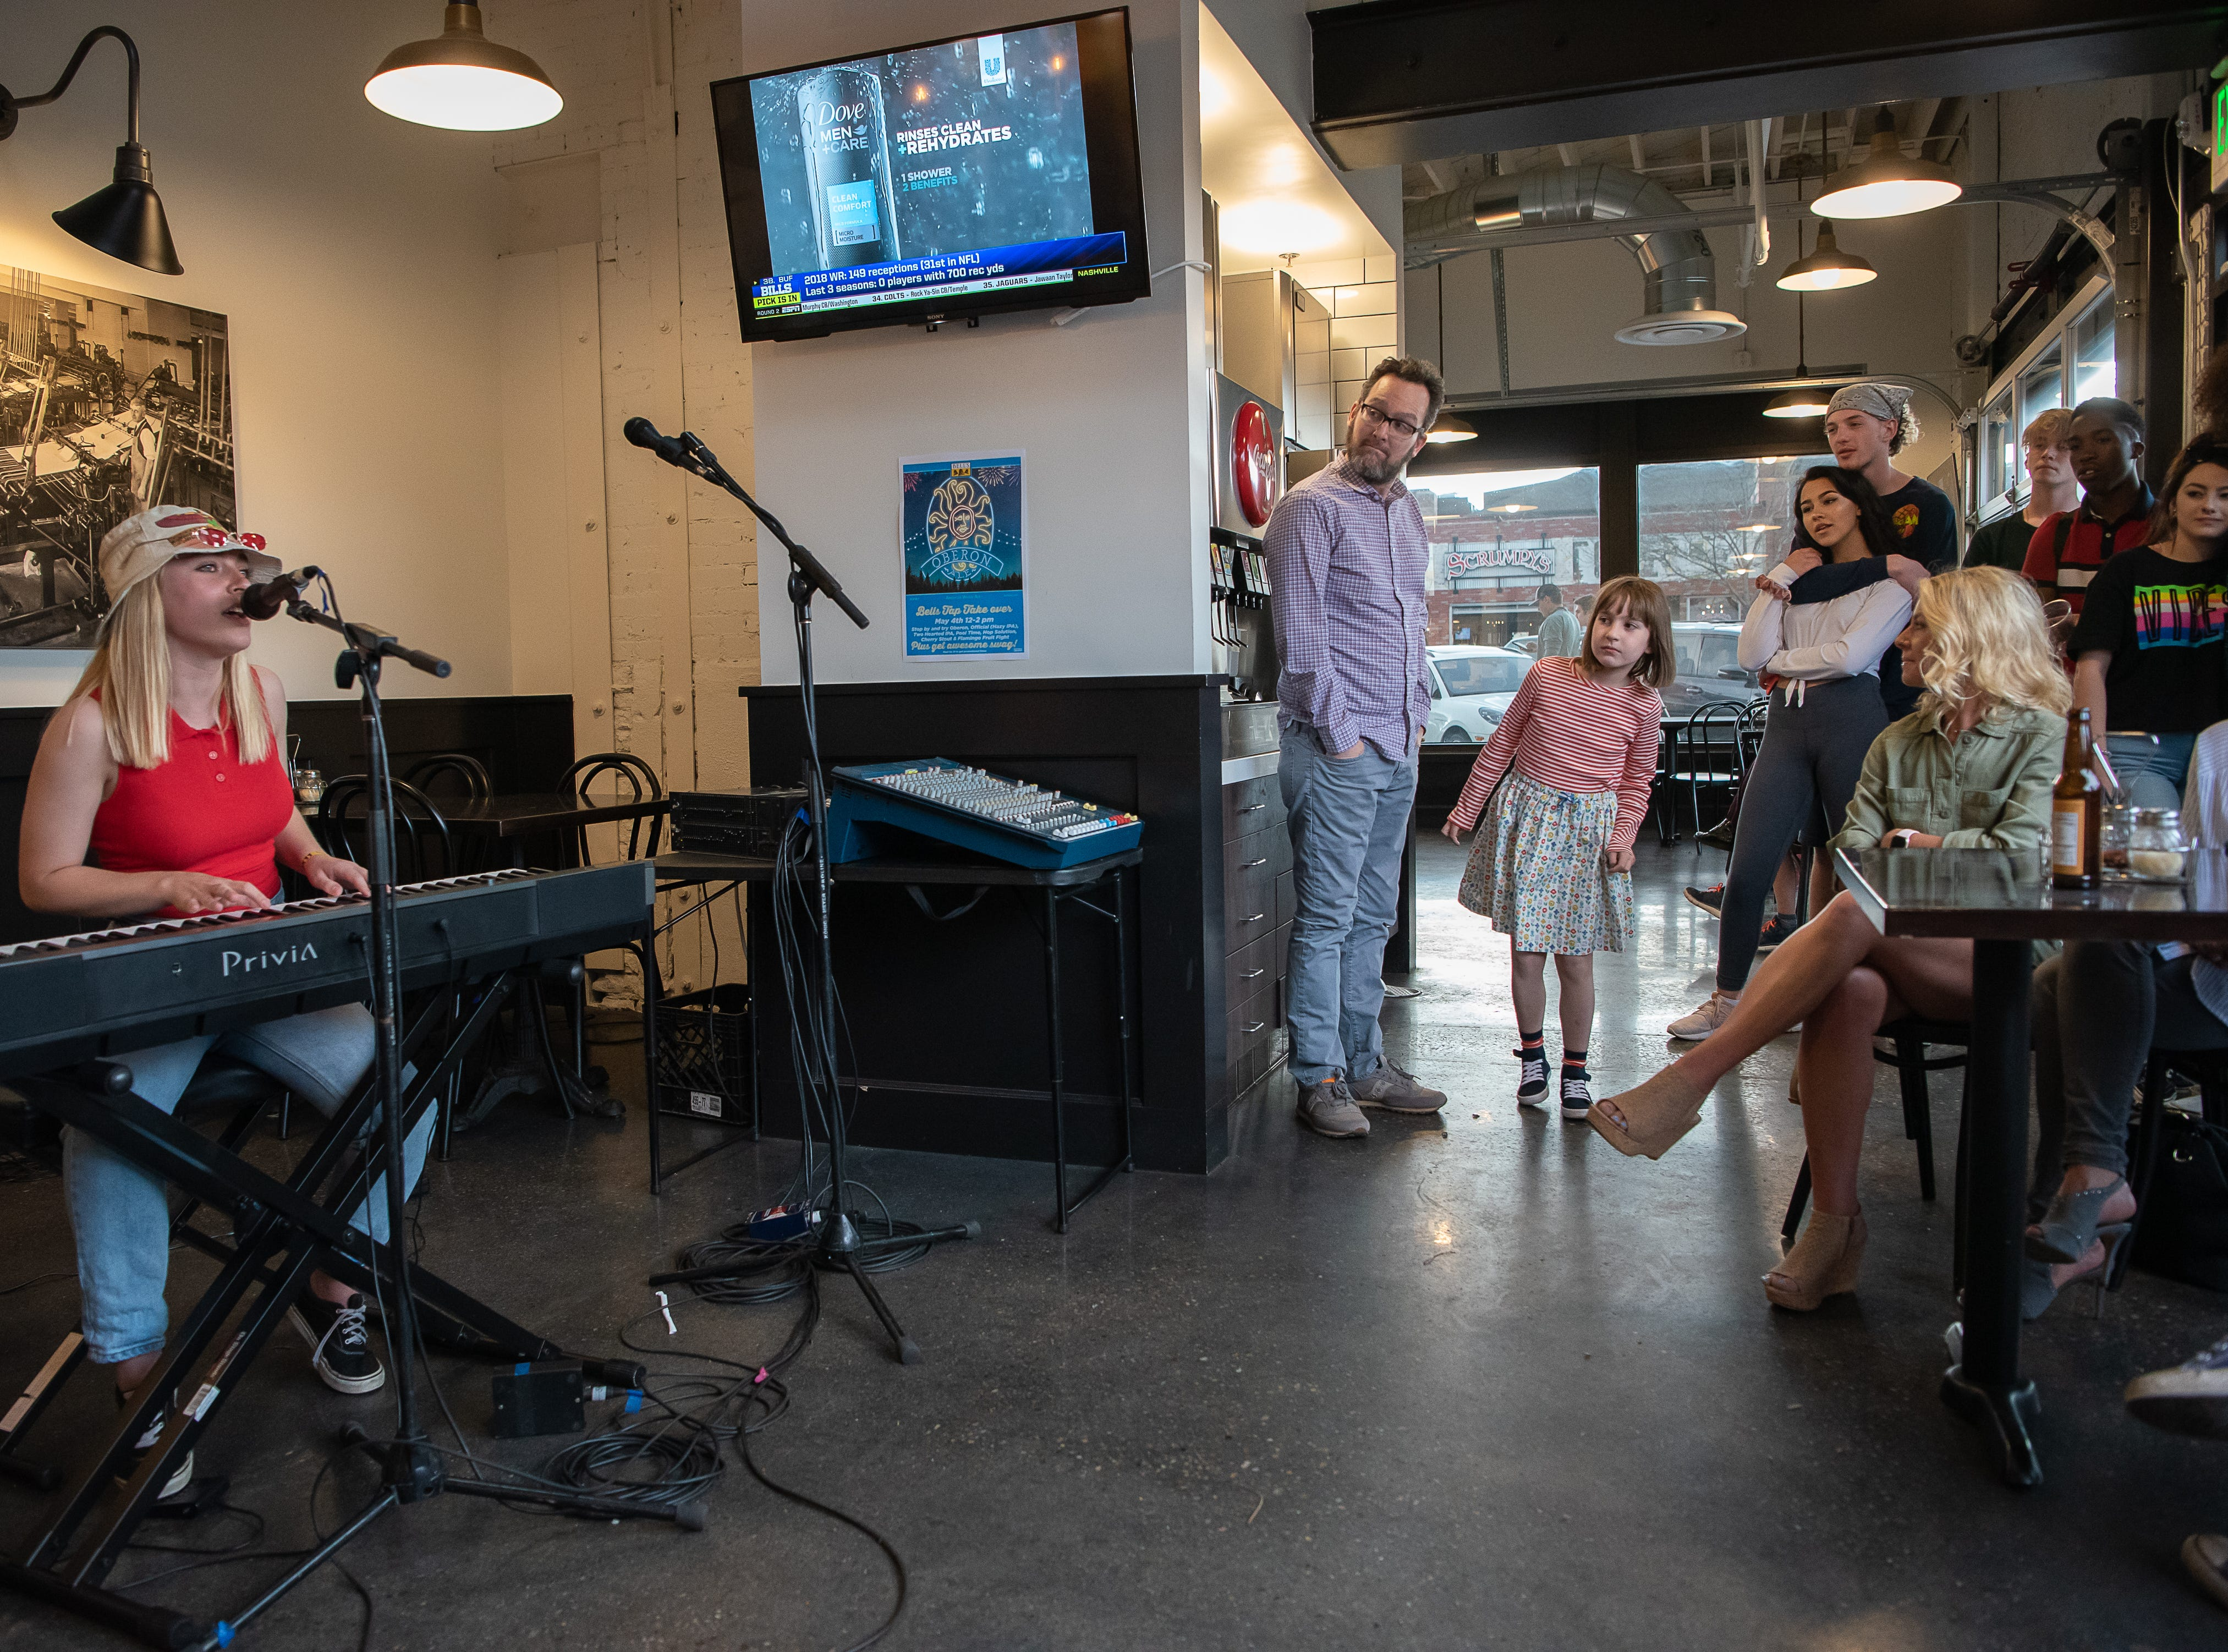 A standing room crowd listens to Cecilia at The Pizza Press during the FoCoMX XI music festival on Friday, April 26, 2019, in Fort Collins, Colo.